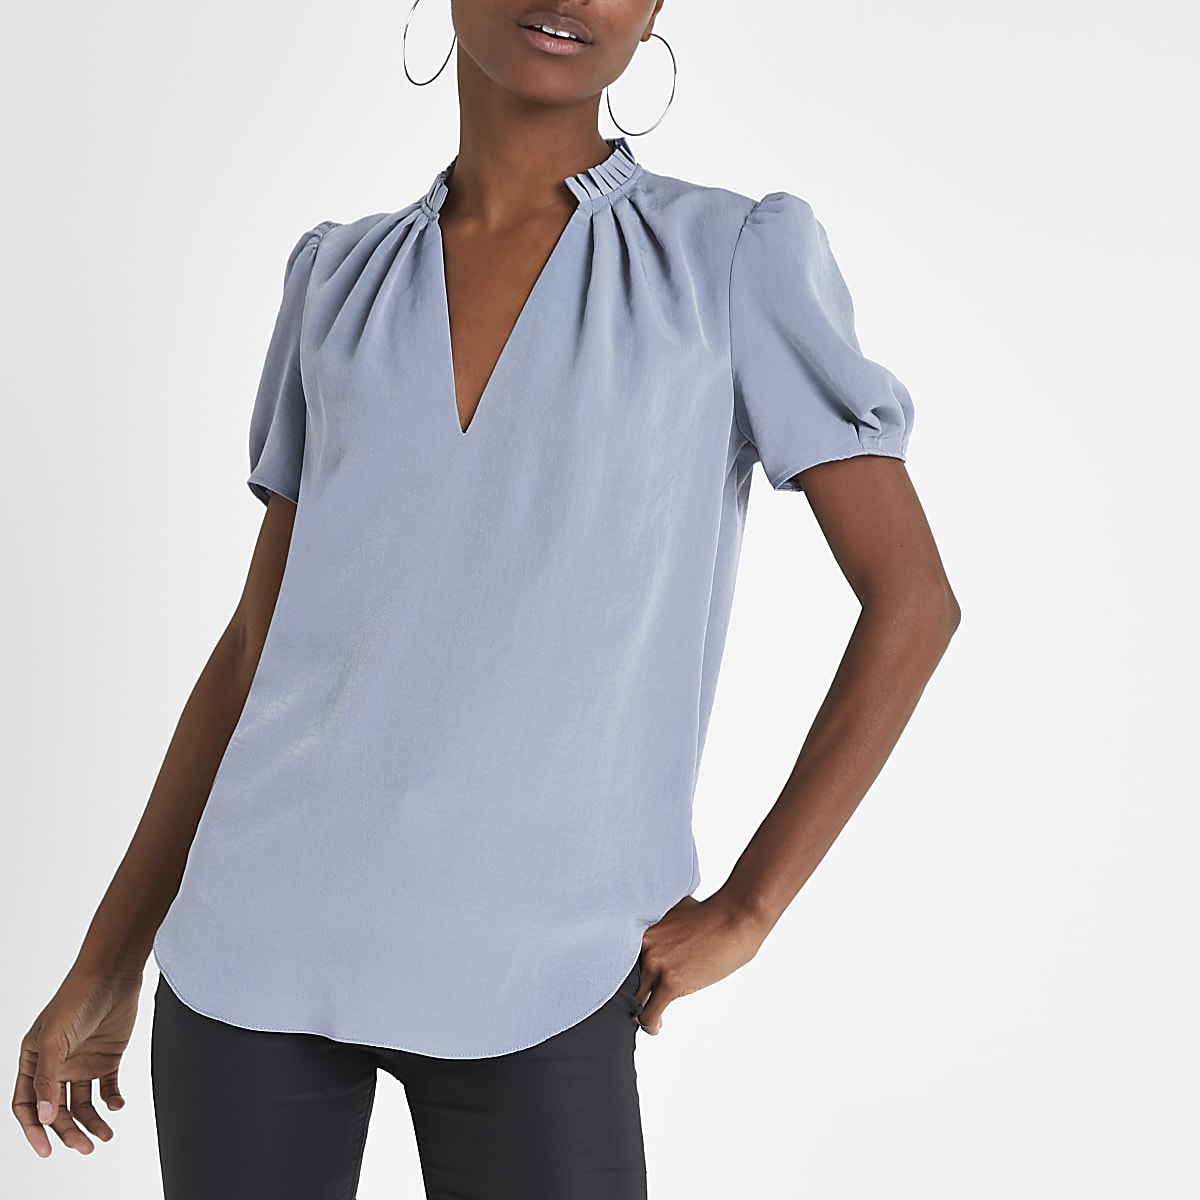 Light grey V neck shell top